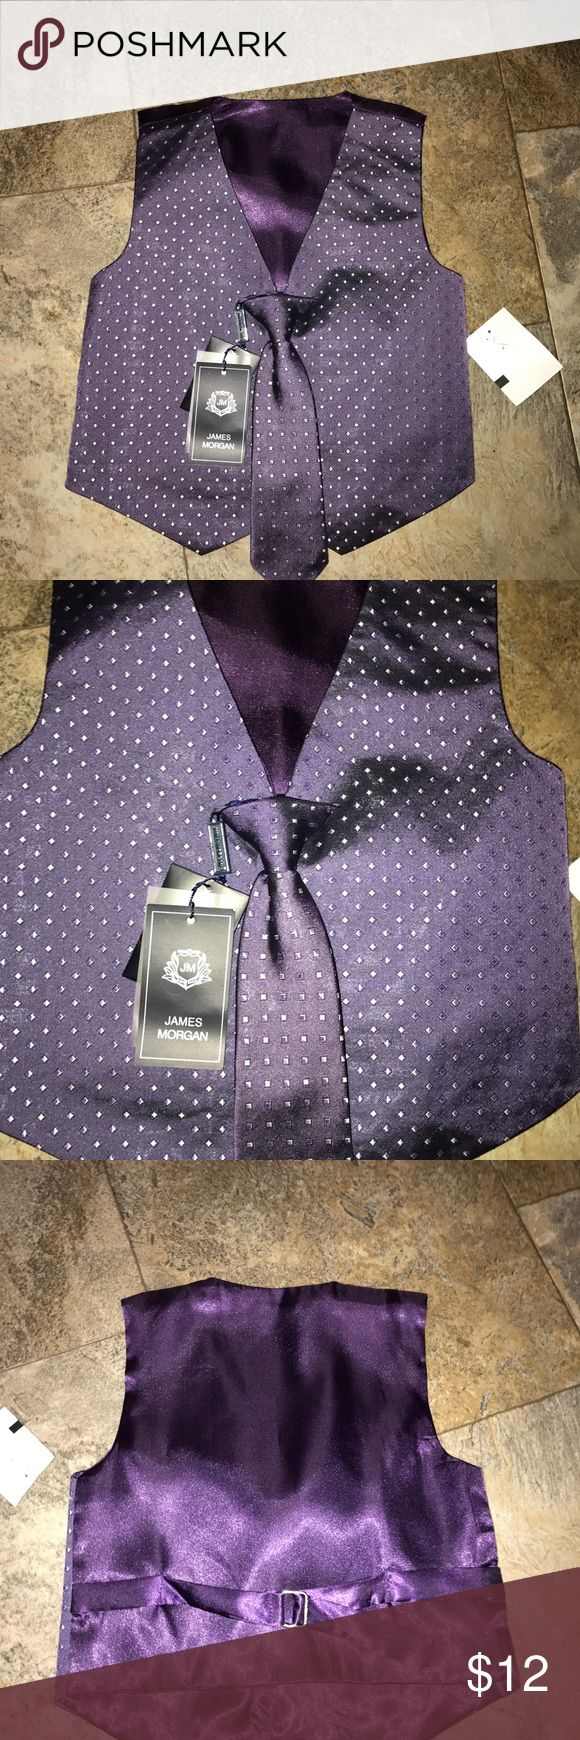 Infant Boys Vest And Tie 3T NWT  James morgan Infant Boys Vest And Tie 3T NWT  James morgan brand Shirts & Tops Blouses